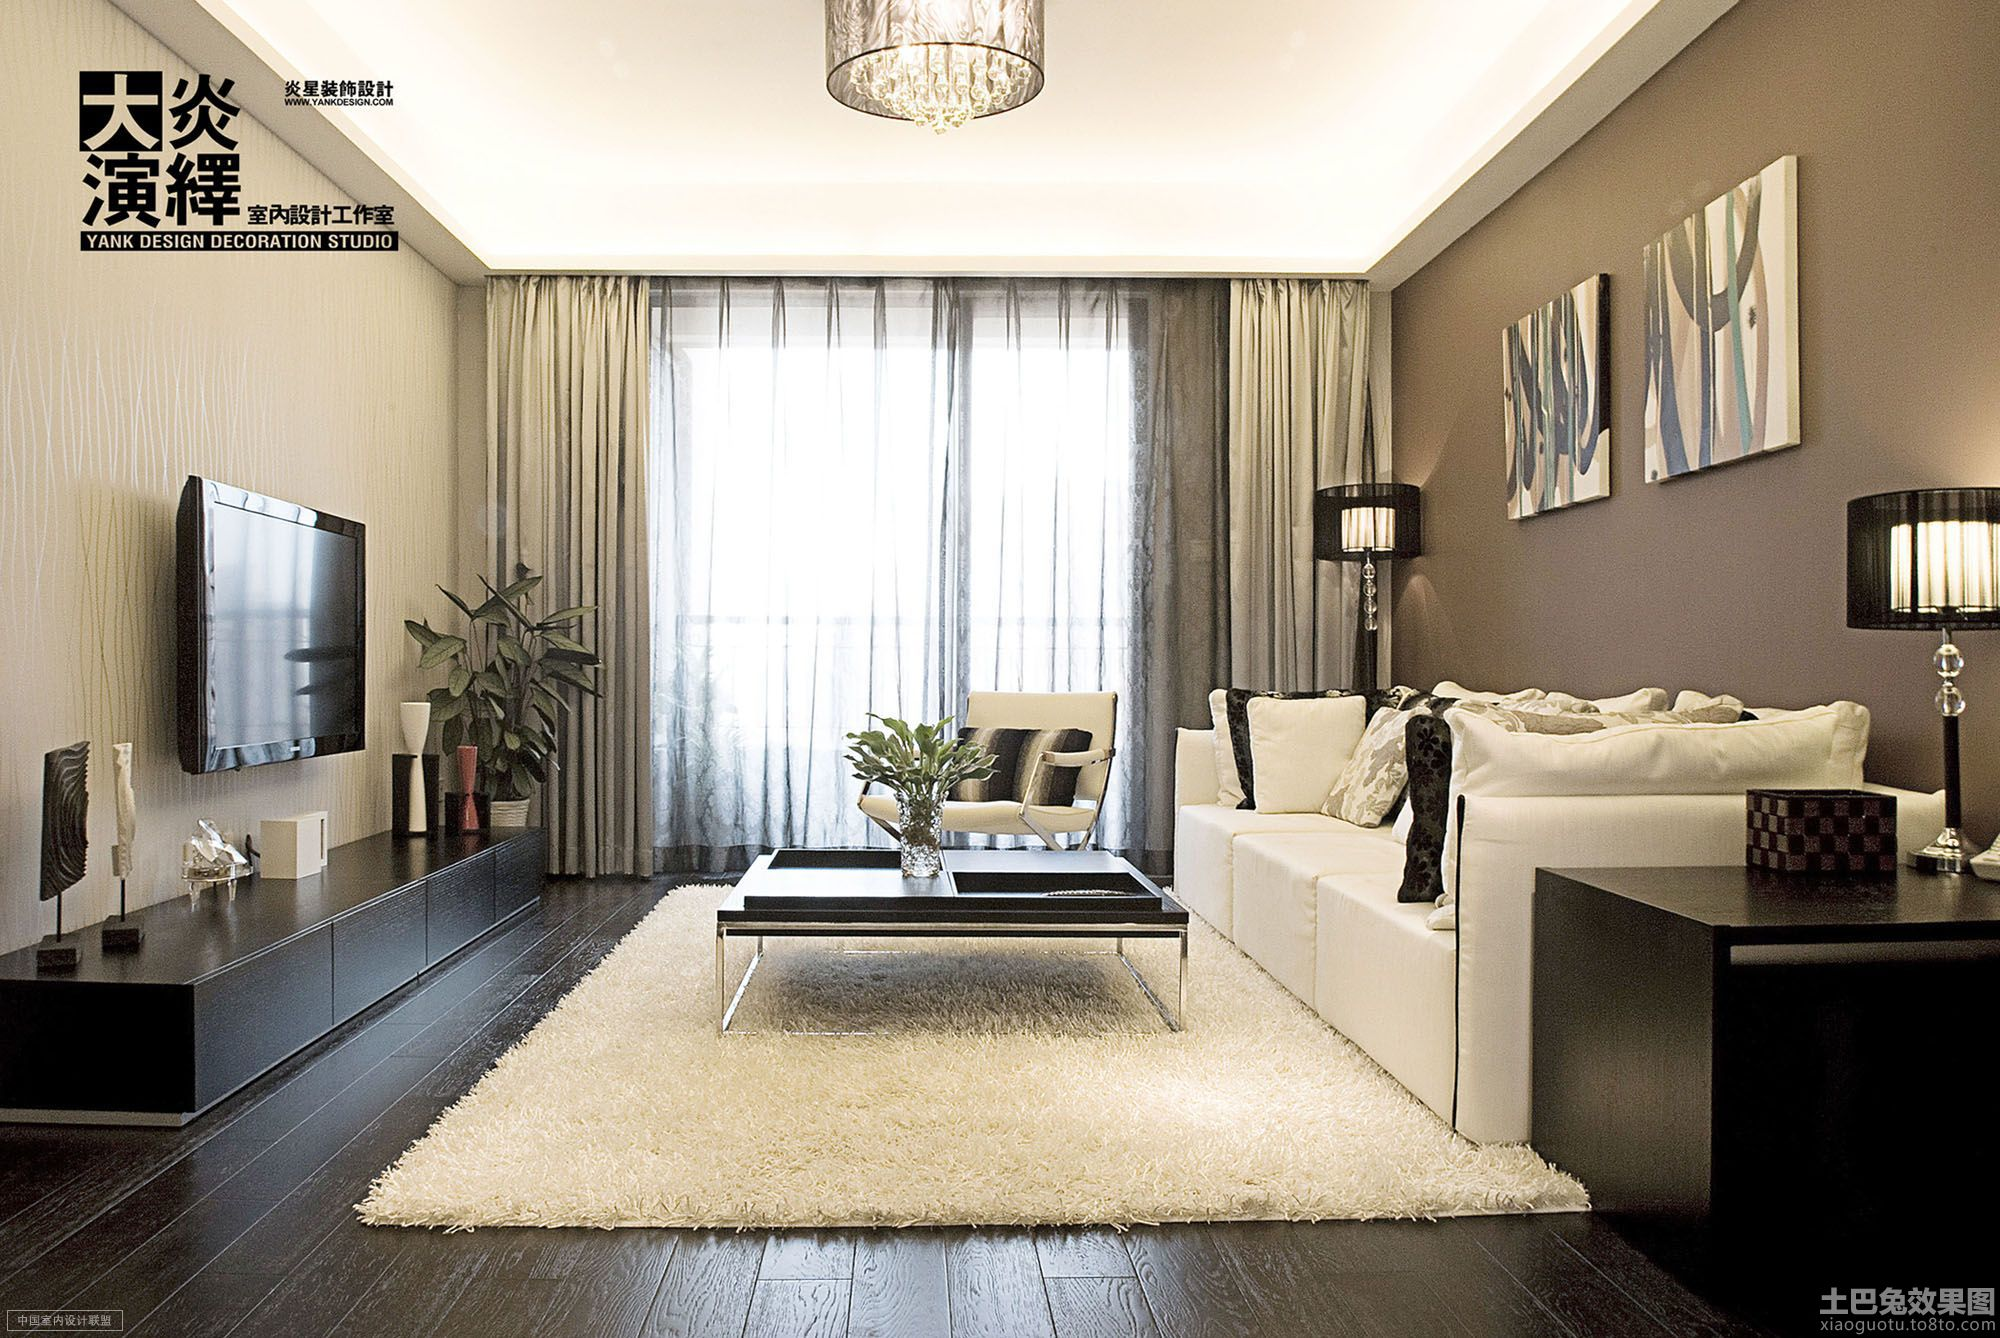 interior design pictures of small living rooms 现代简约客厅影视墙设计 土巴兔装修效果图 27769